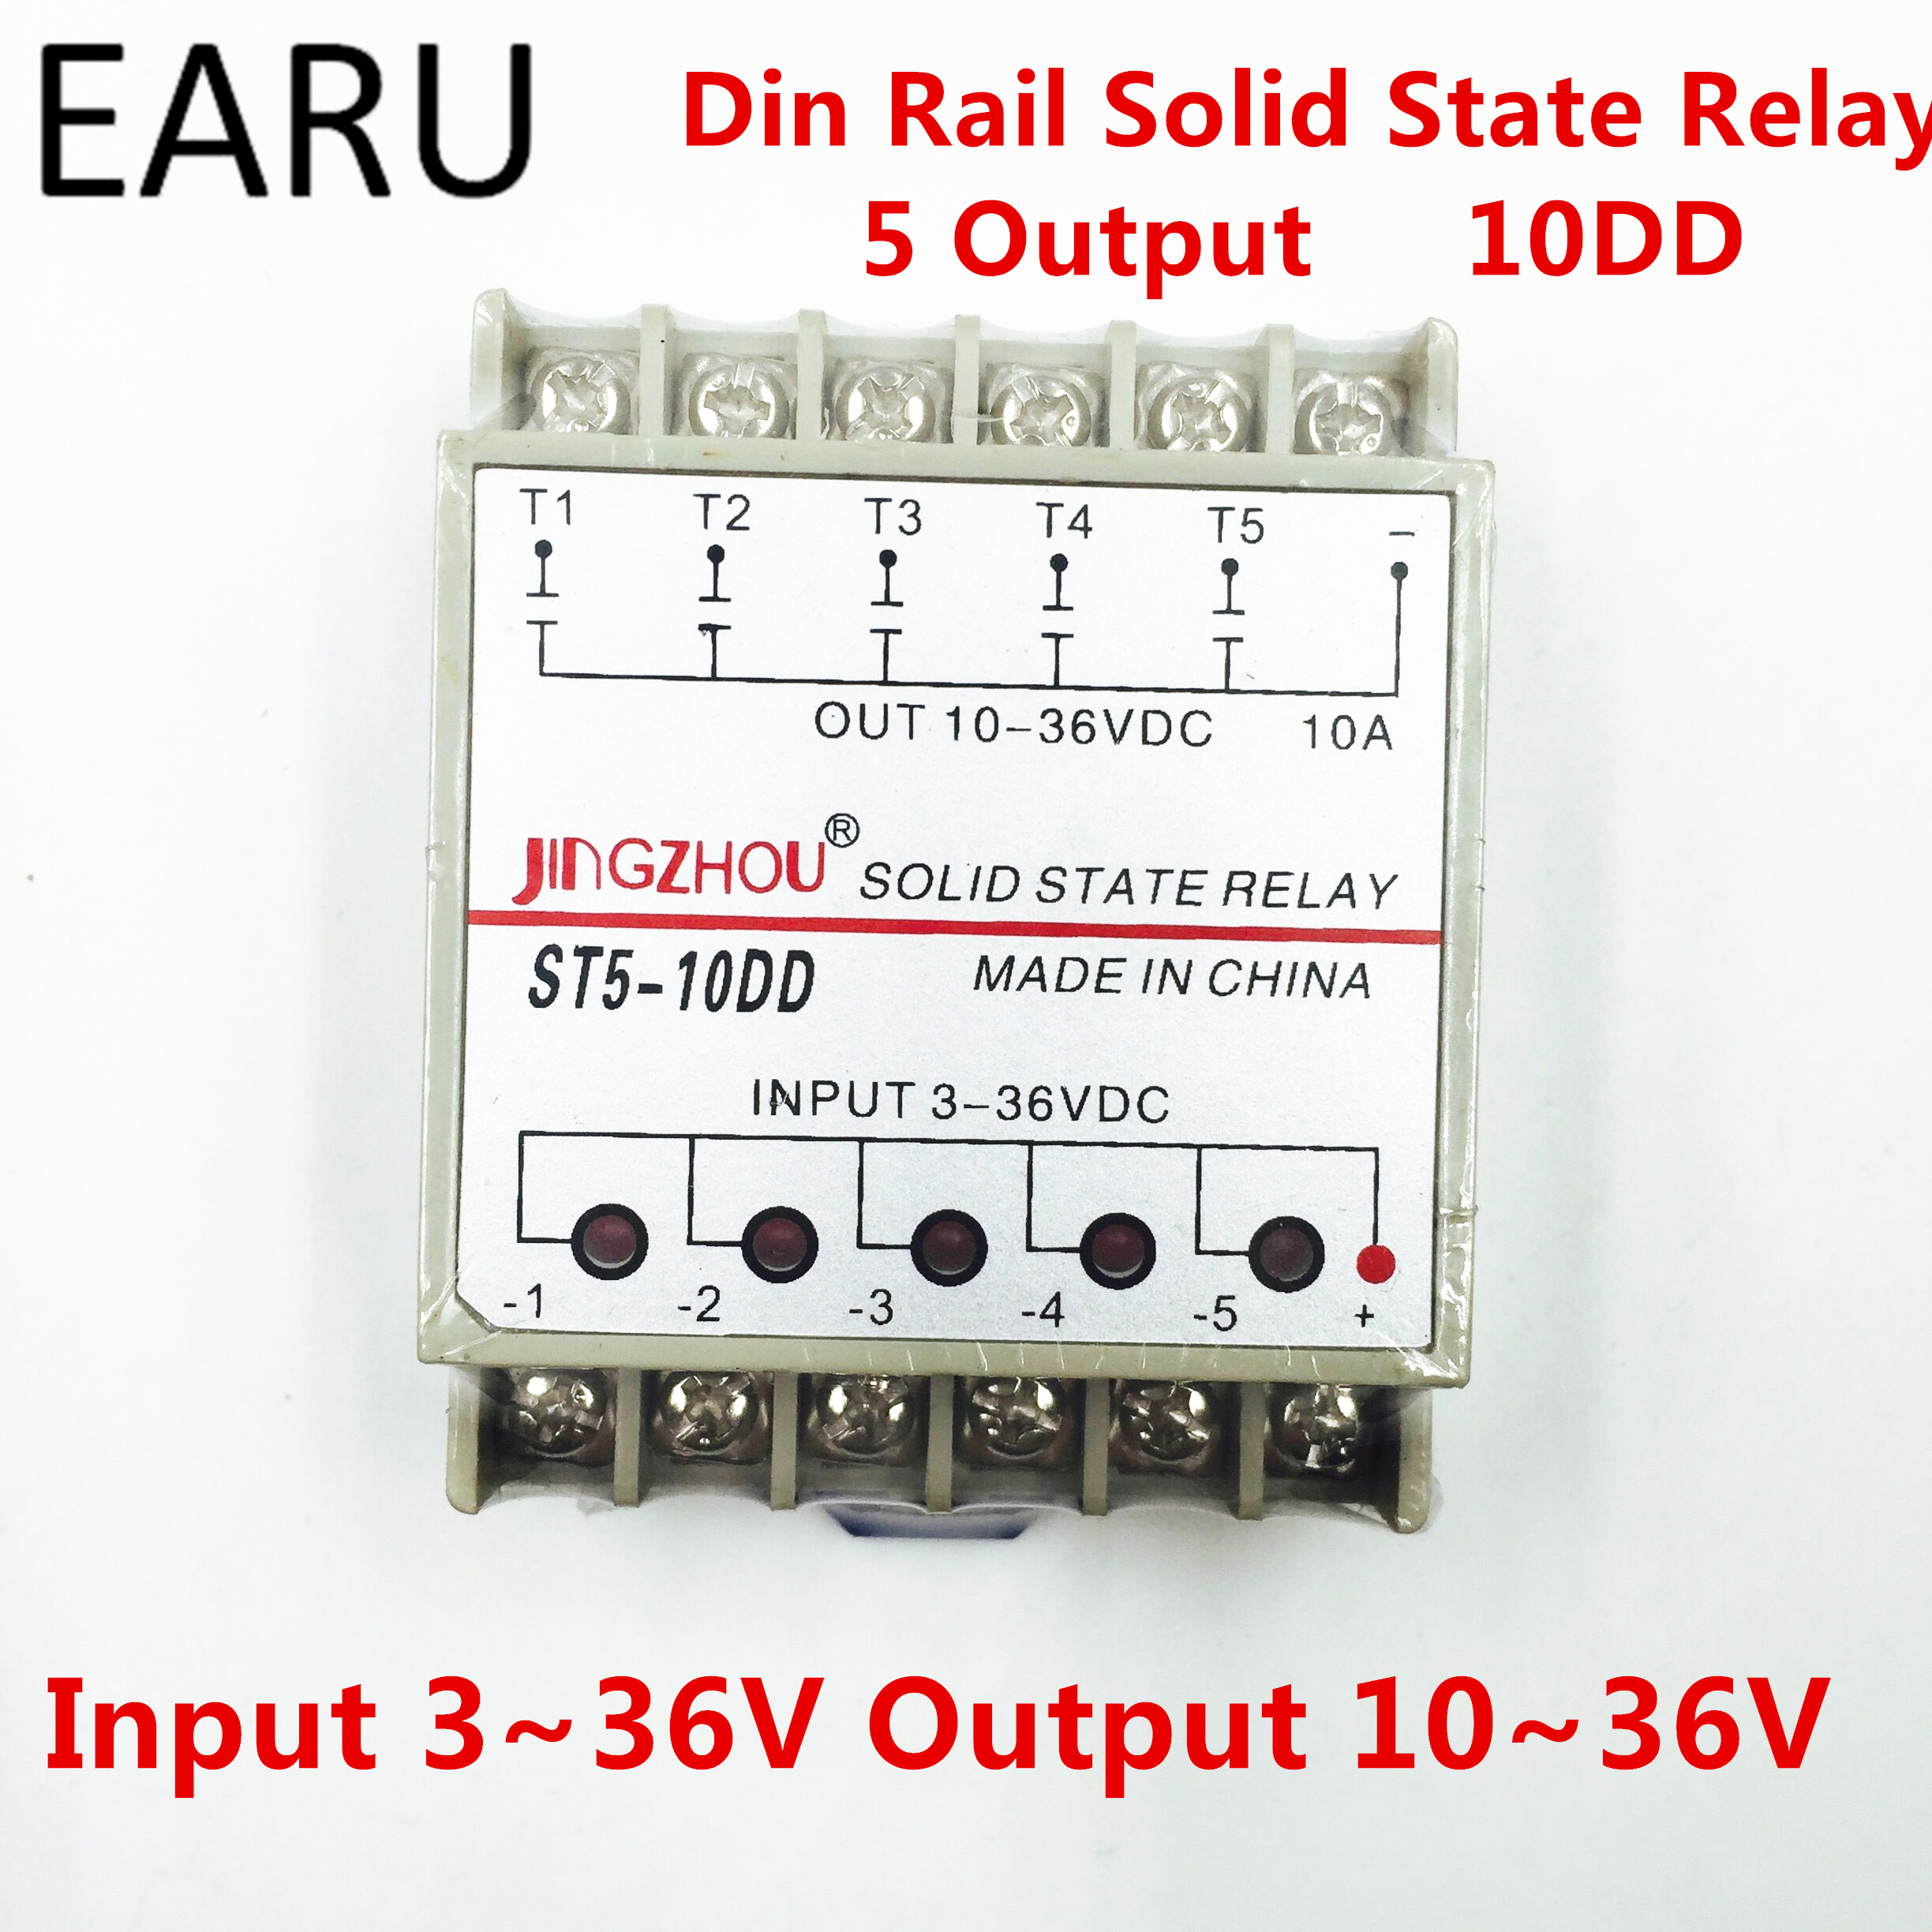 10DD 5 Channel Din rail SSR quintuplicate five input 3~36VDC output 10~36VDC single phase DC solid state relay 1pc 10da 5 channel din rail ssr quintuplicate five input 3 32vdc output 24 380vac single phase dc solid state relay 10a plc hot page 5